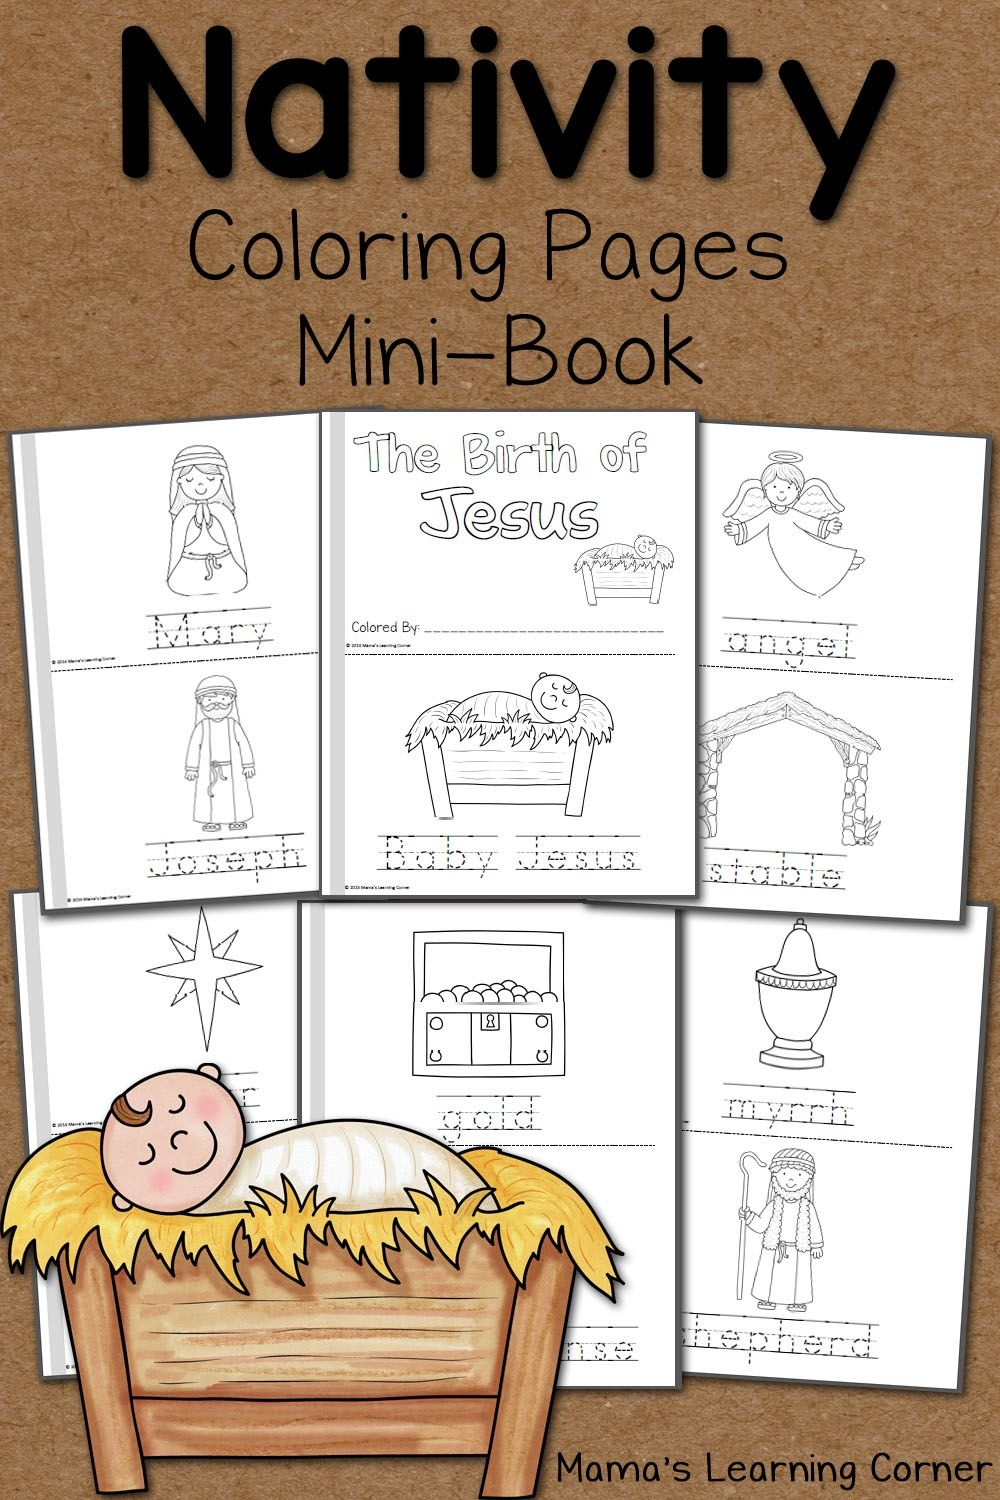 Nativity Coloring Pages | Printables | Nativity Coloring Pages - Free Printable Christmas Story Coloring Pages